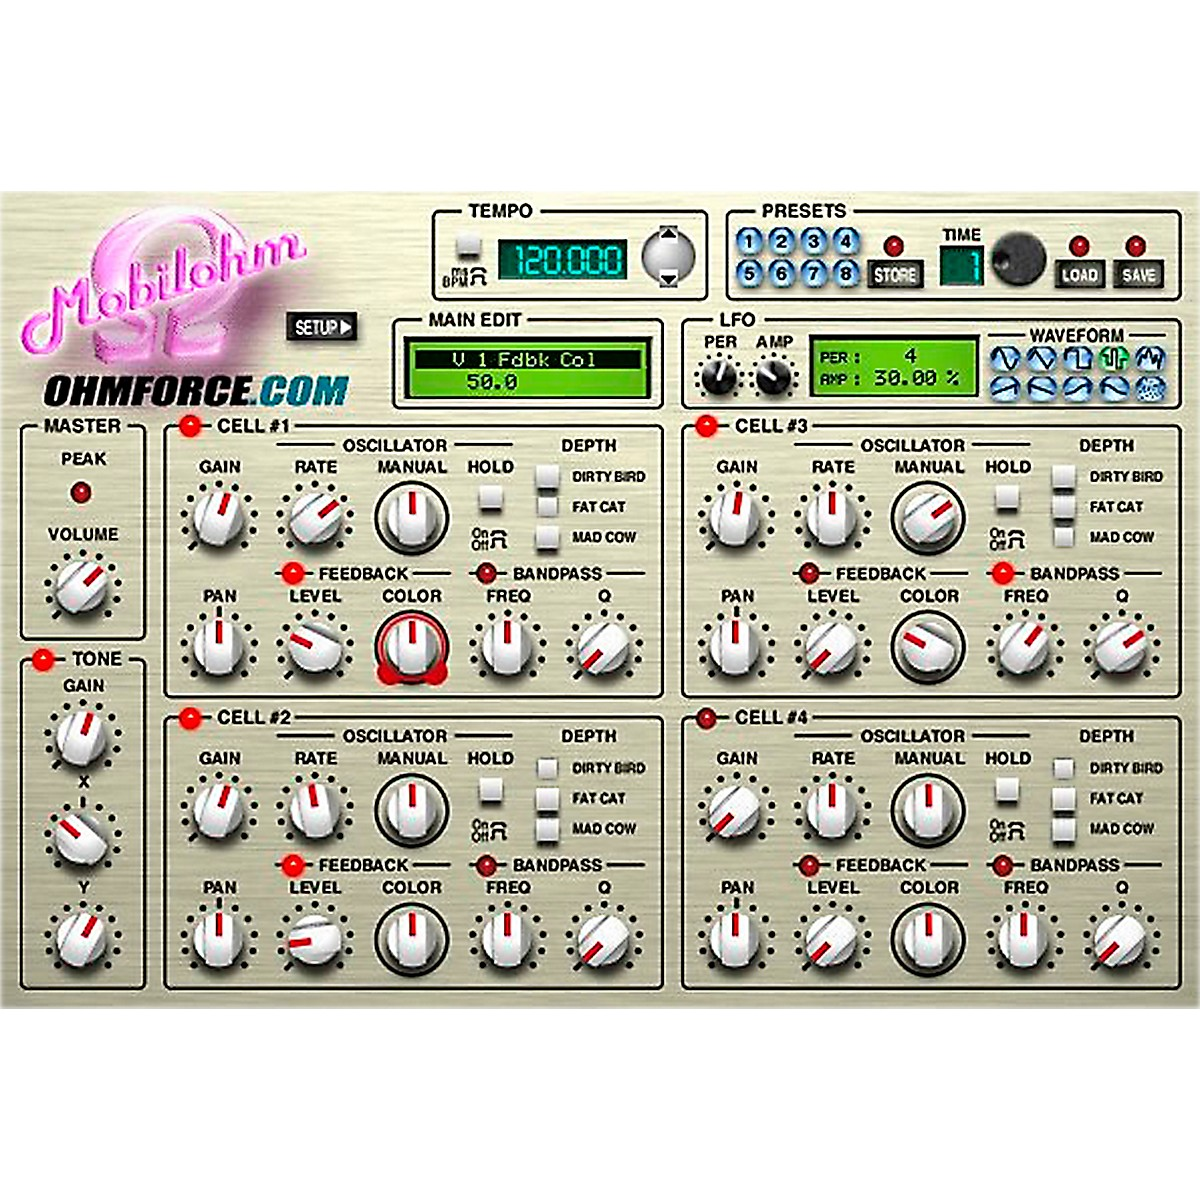 Ohm Force Mobileohm Software Download